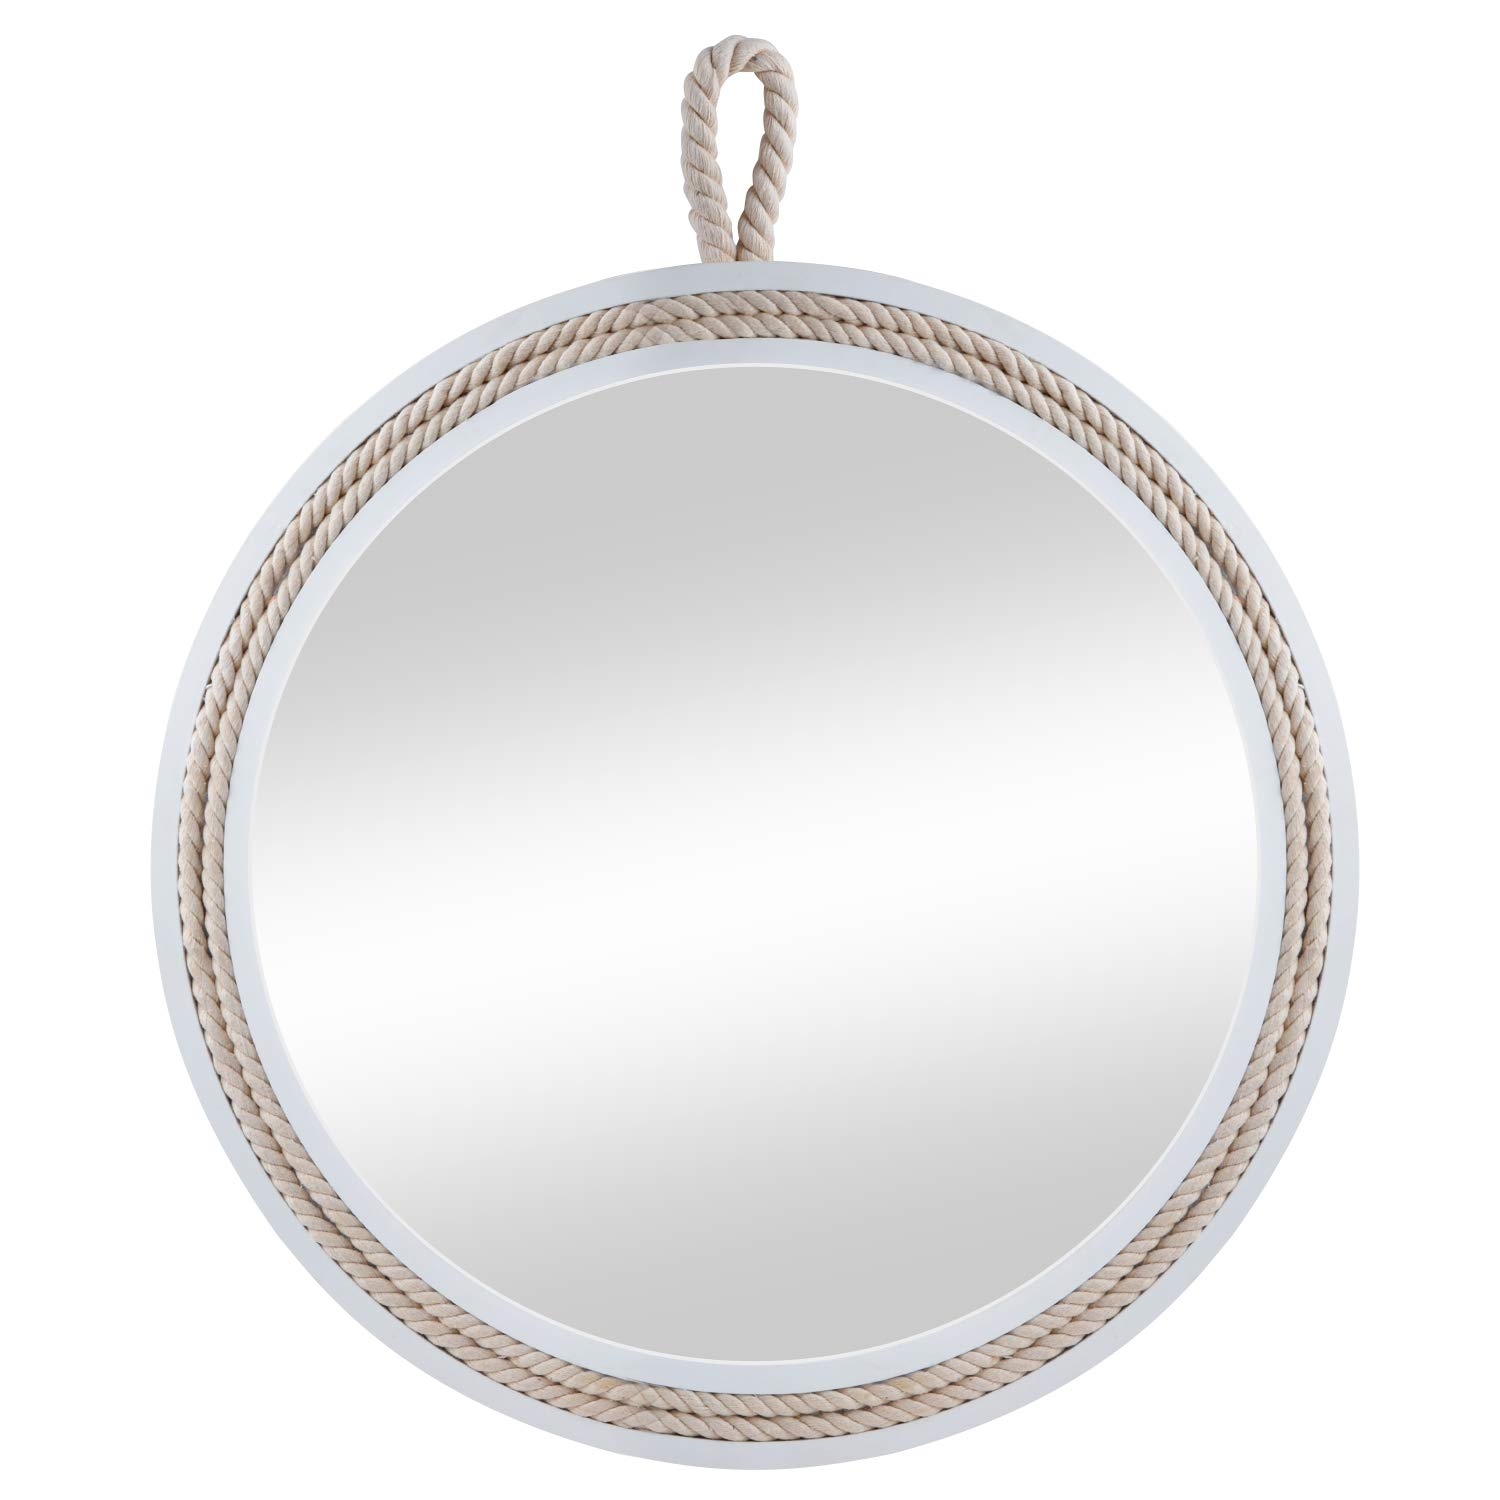 Decor Trends Wall Mirror Rope Mirror Round Decorative Mirror with Wooden Frame & Rope Hanging Loop for Wall,Vintage Wooden Mirror for Home Decor (Dia 11.4'')